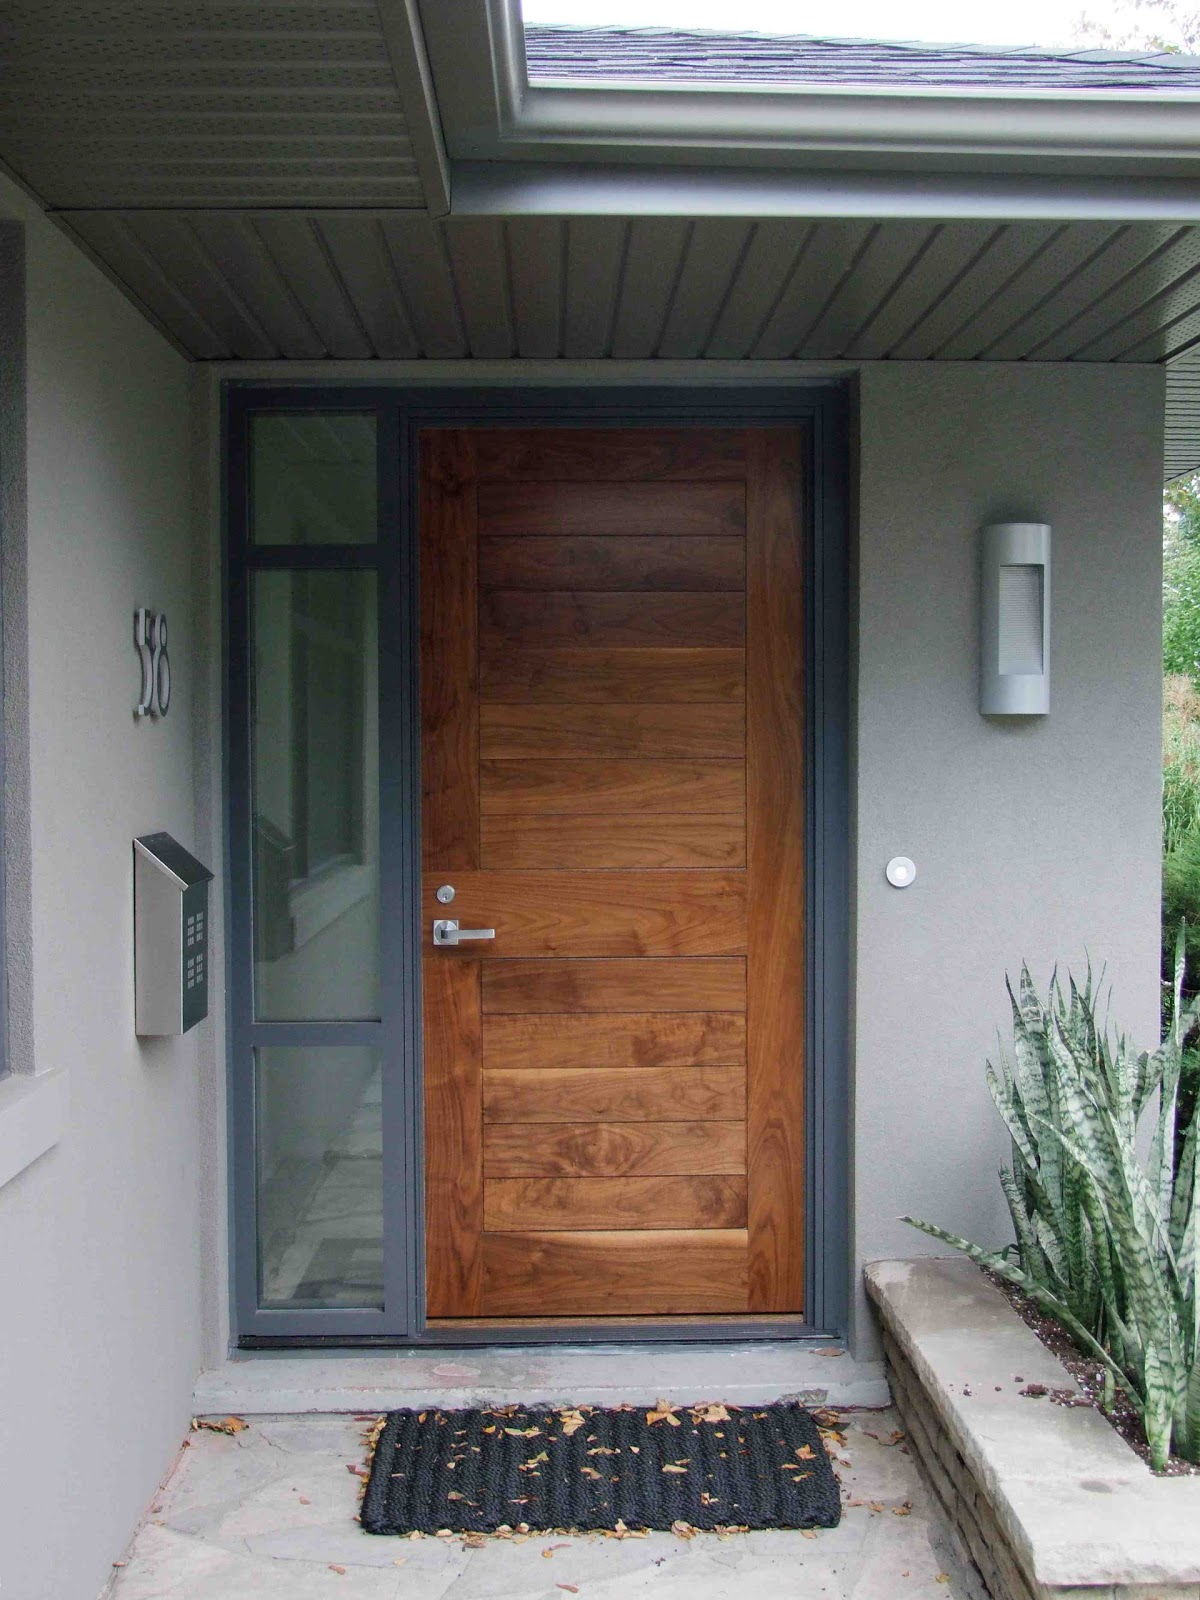 Creed 70 39 s bungalow makes a modern impression for New front doors for homes